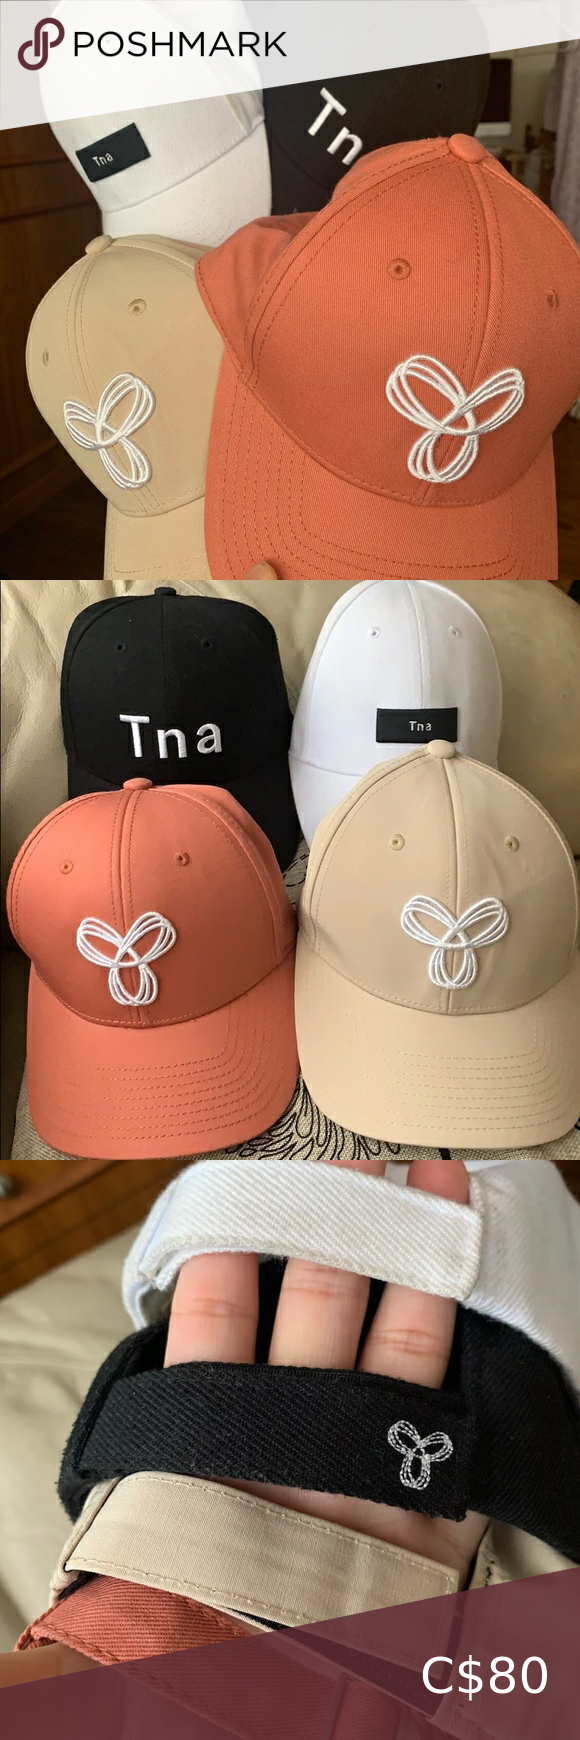 4 For 65 Nwot Tna Caps Except White Color Brand New Tna Caps Please See Pictures White Cap Has Foundati White Caps Suede Baseball Cap Women Accessories Hats